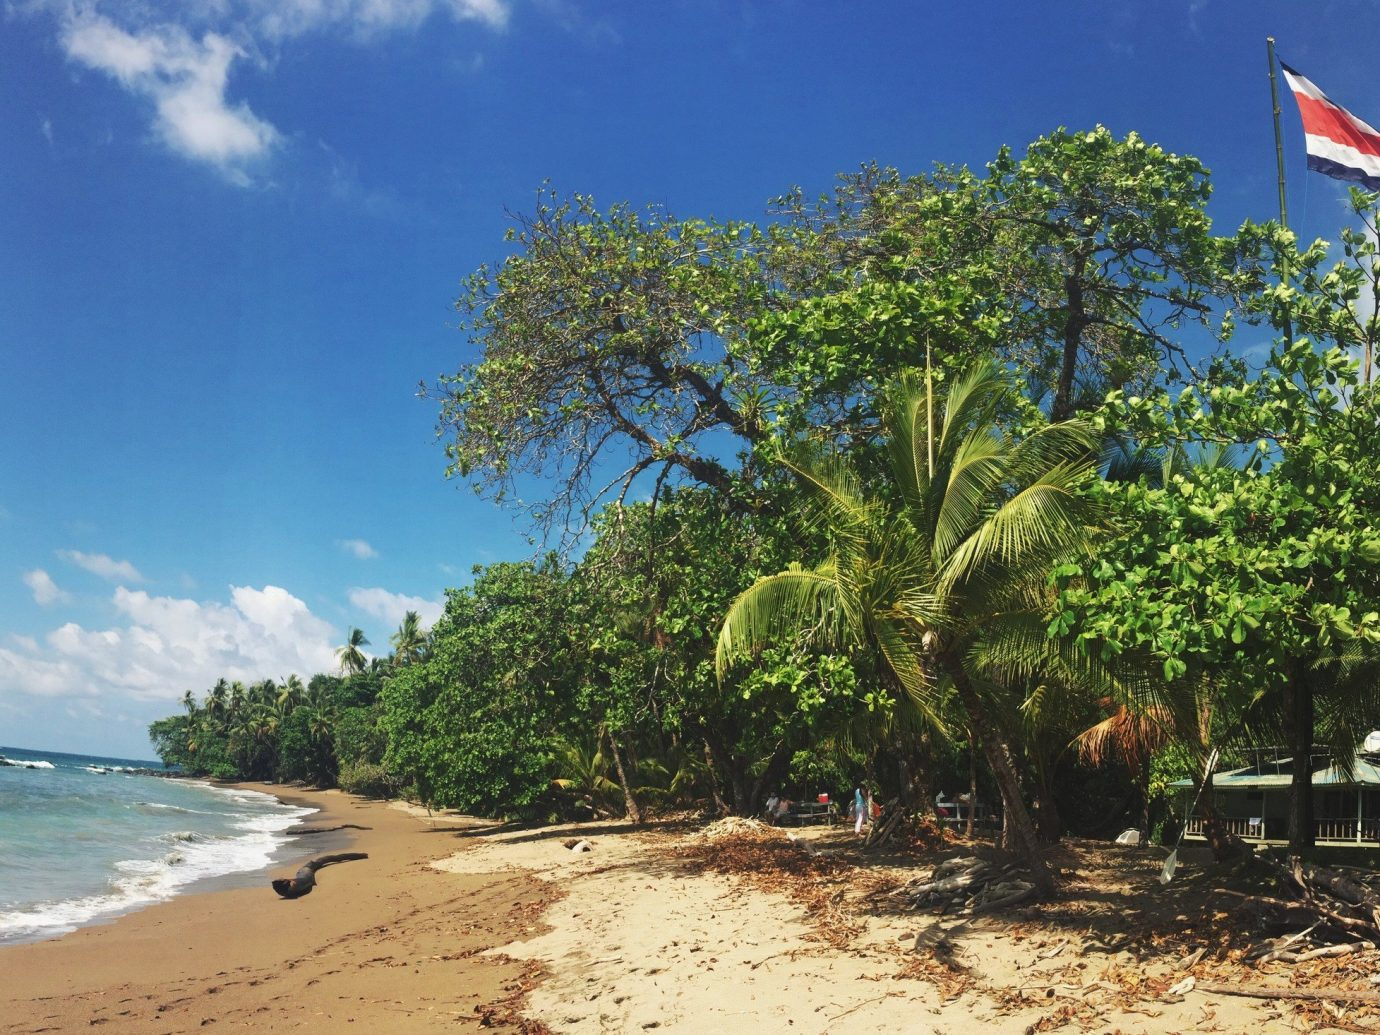 Beach on the Osa Peninsula in Costa Rica